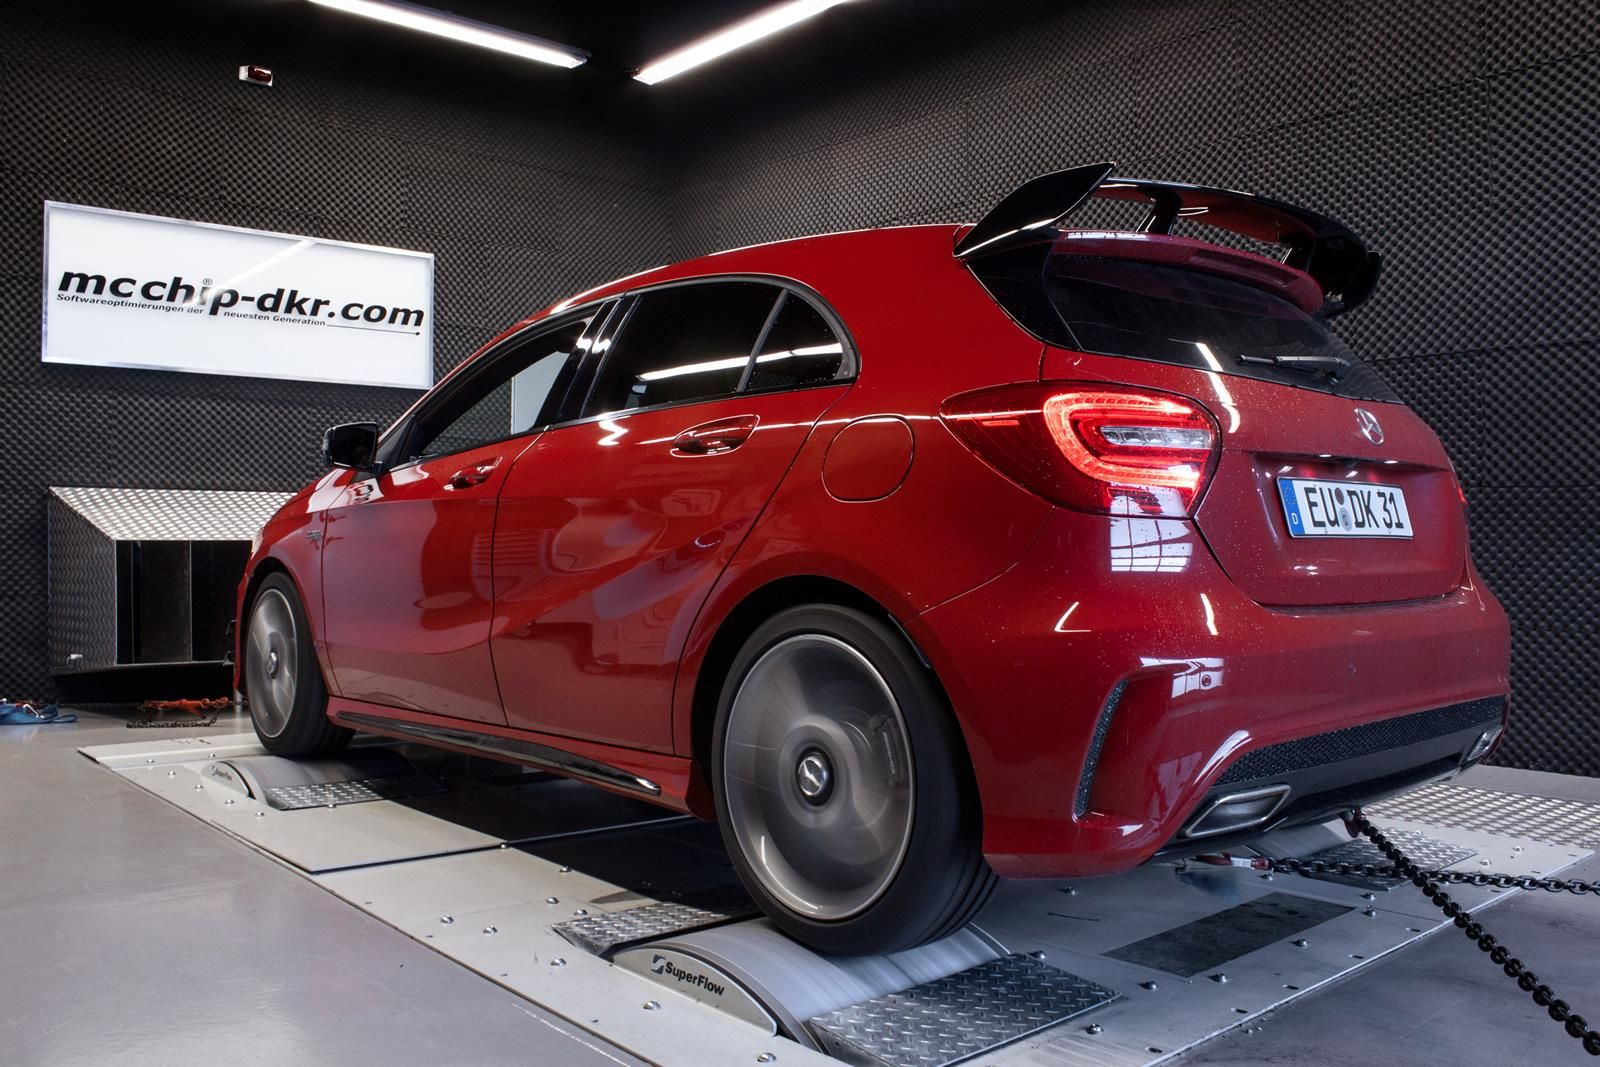 Mercedes benz a45 amg tuned by mcchip dkr